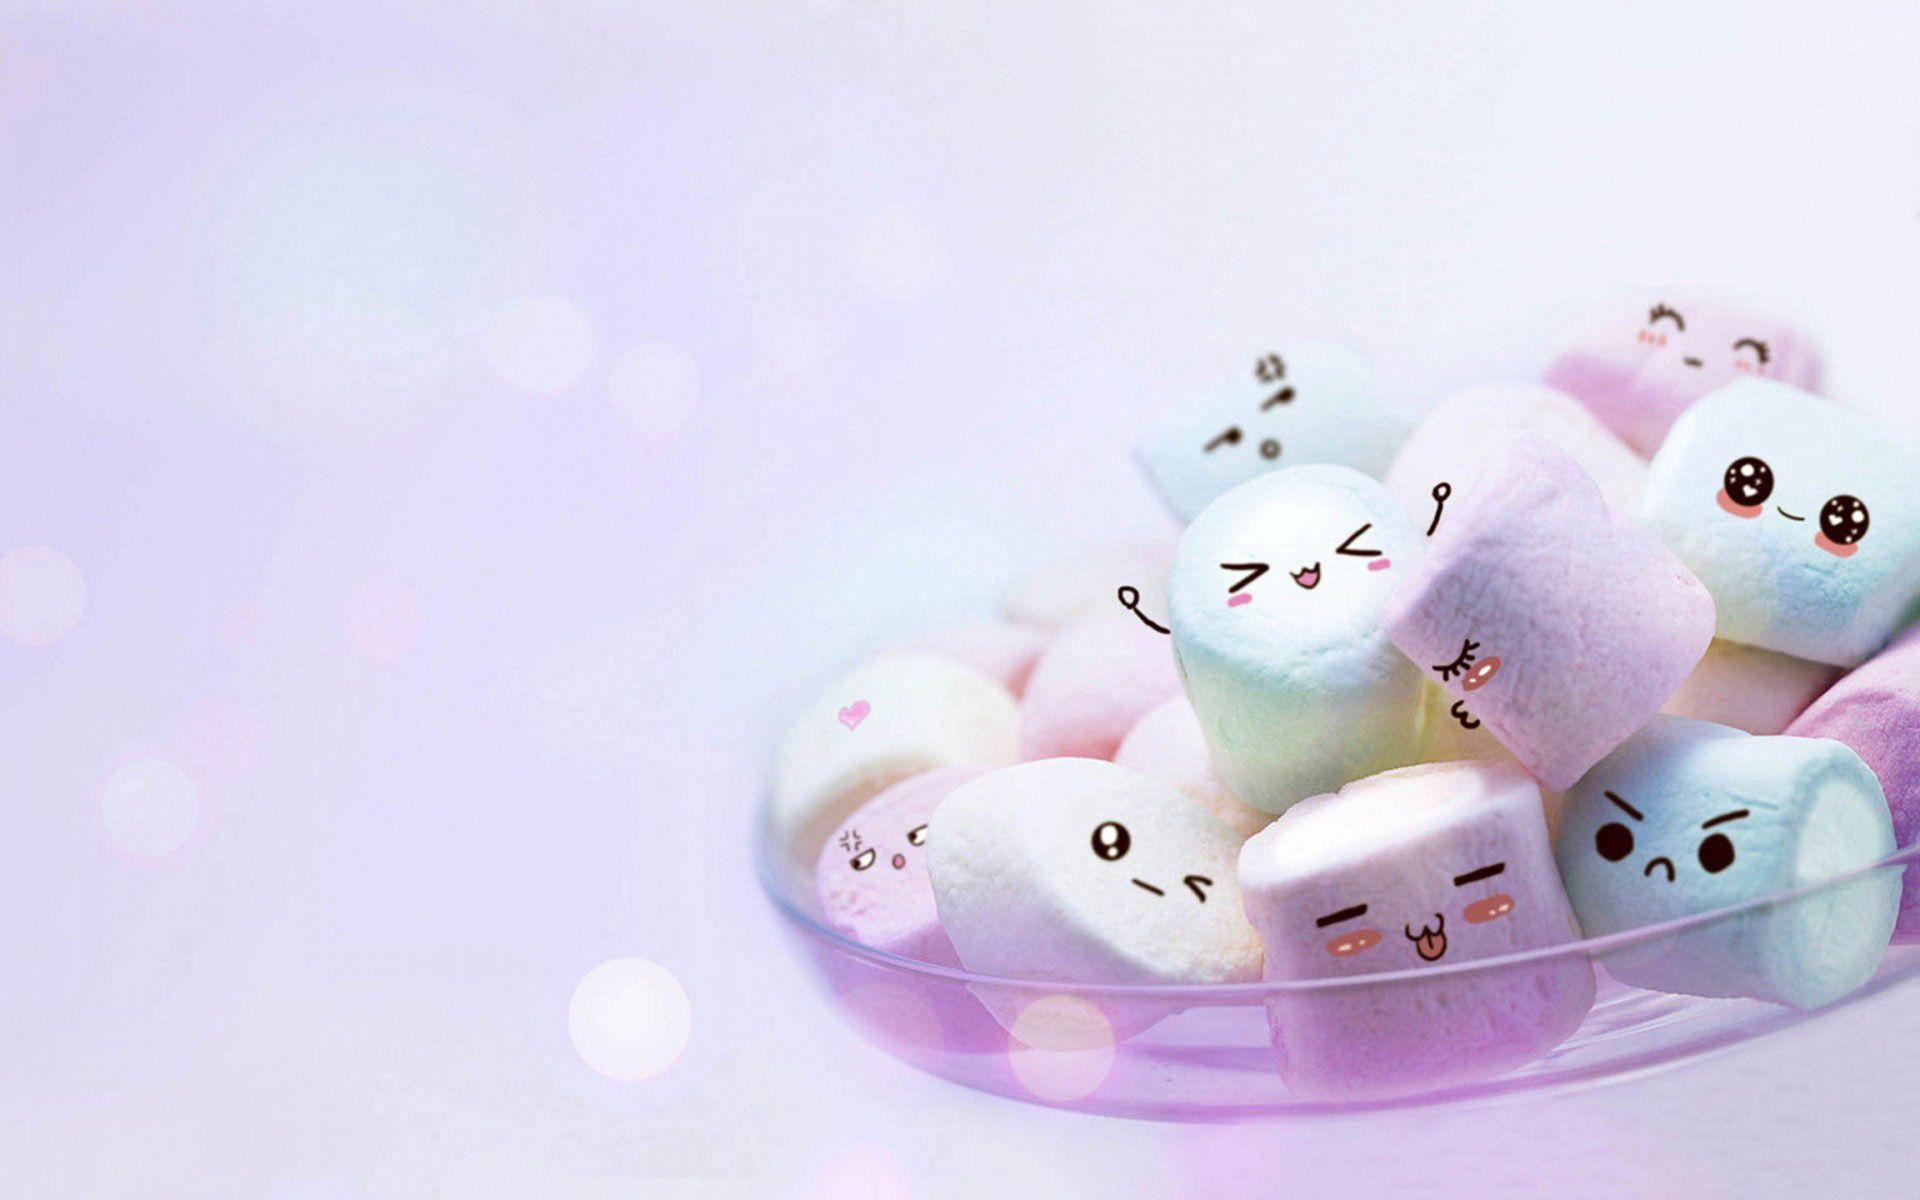 marshmallow wallpaper 4 - photo #16